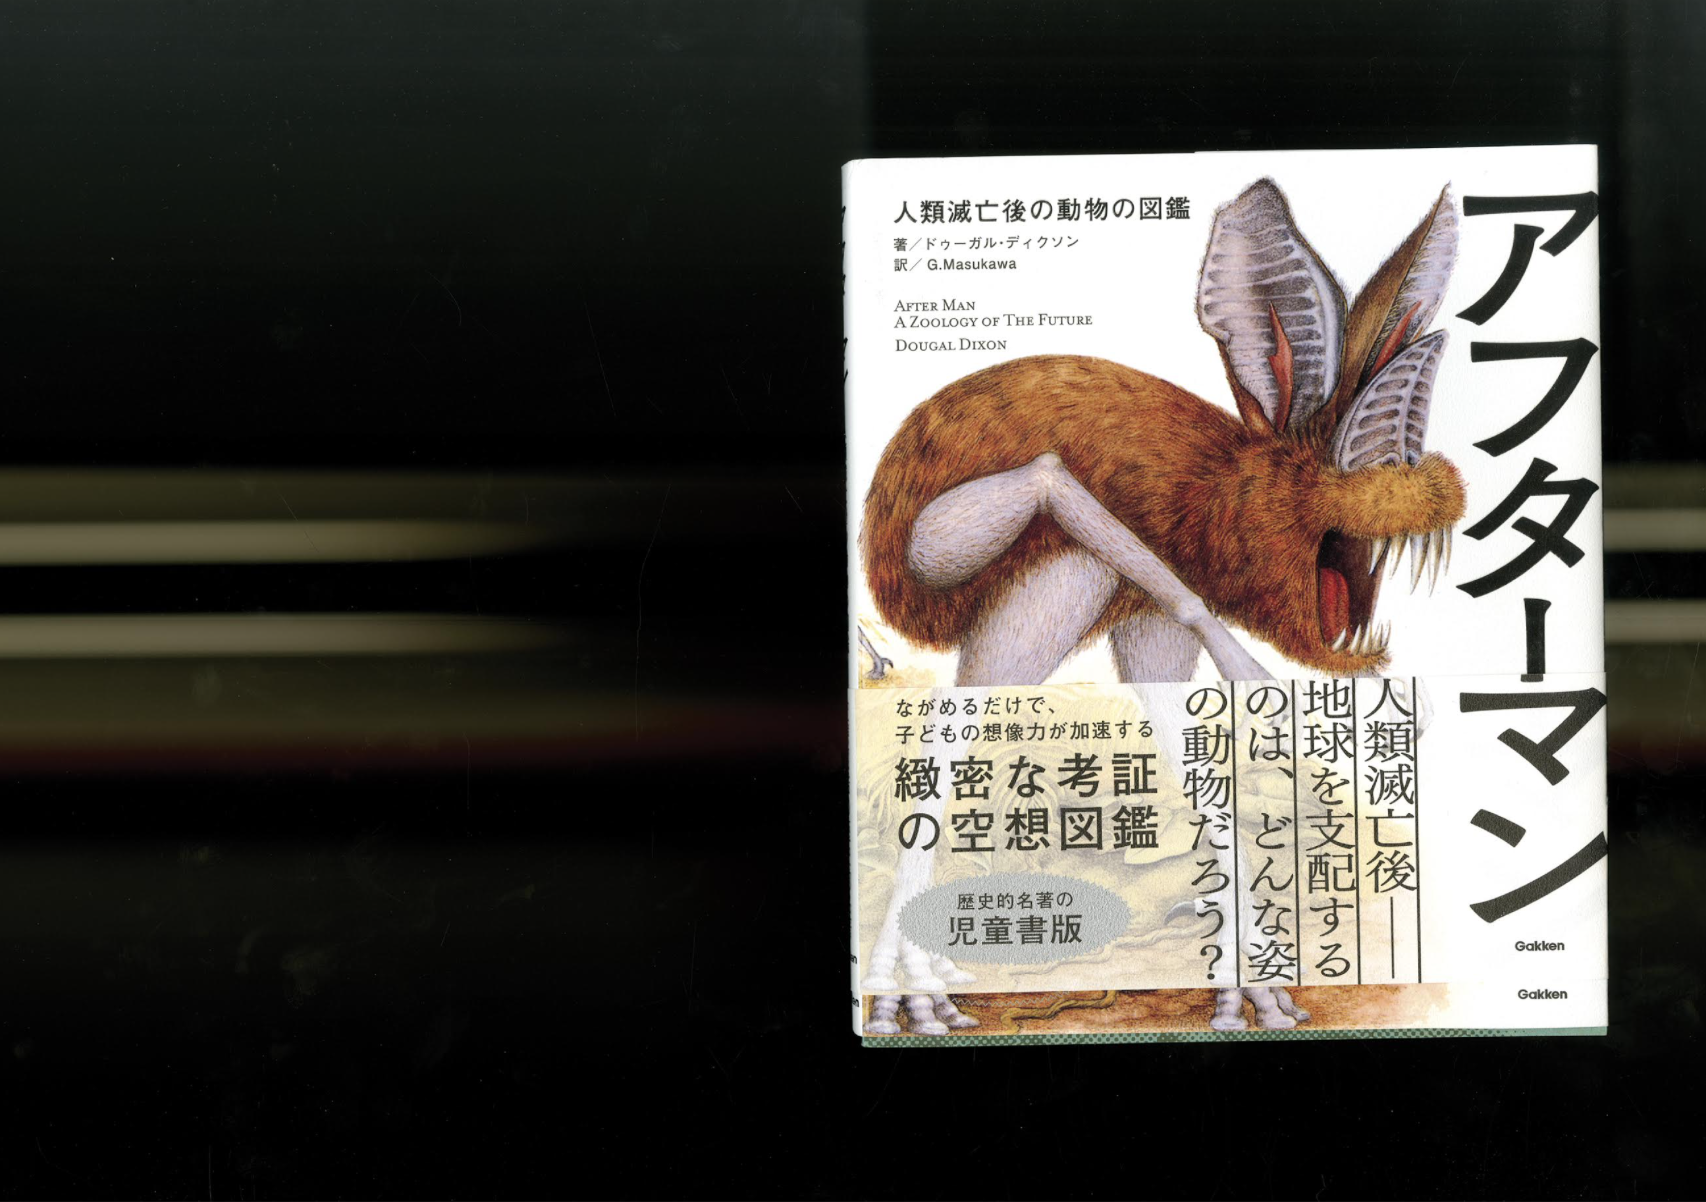 Image of a copy of a magazine with Japanese script and an illustration of a speculative bio-species adjacent to a rabbit.